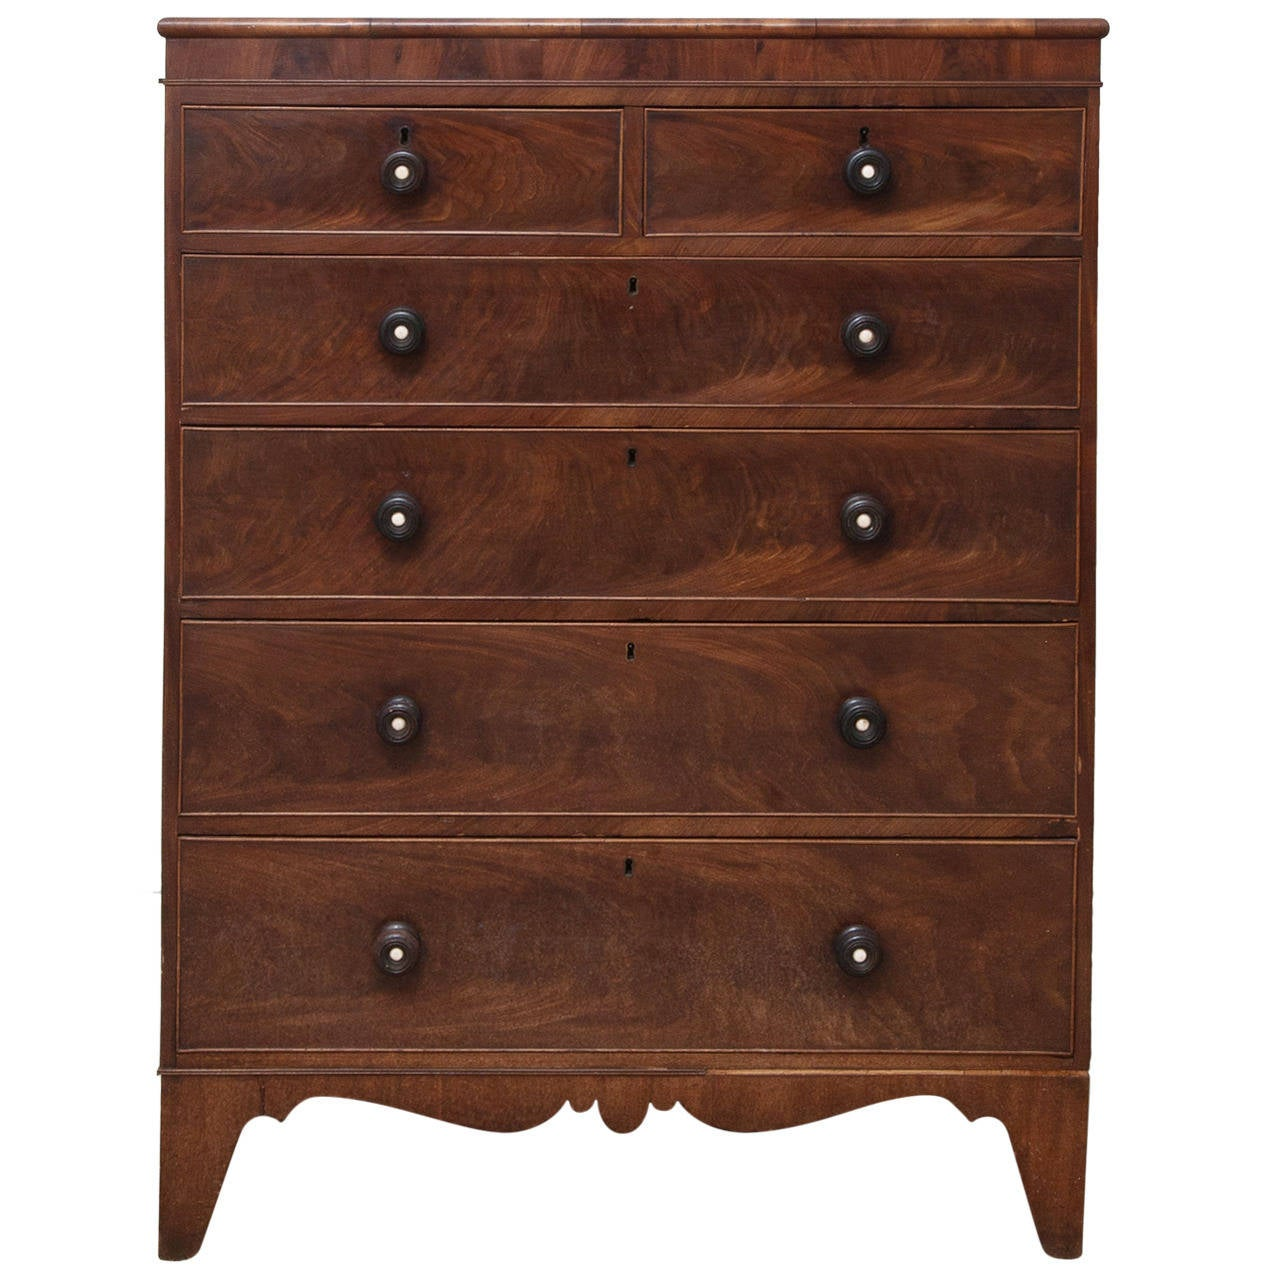 Antique American Tall Chest Of Drawers At 1stdibs